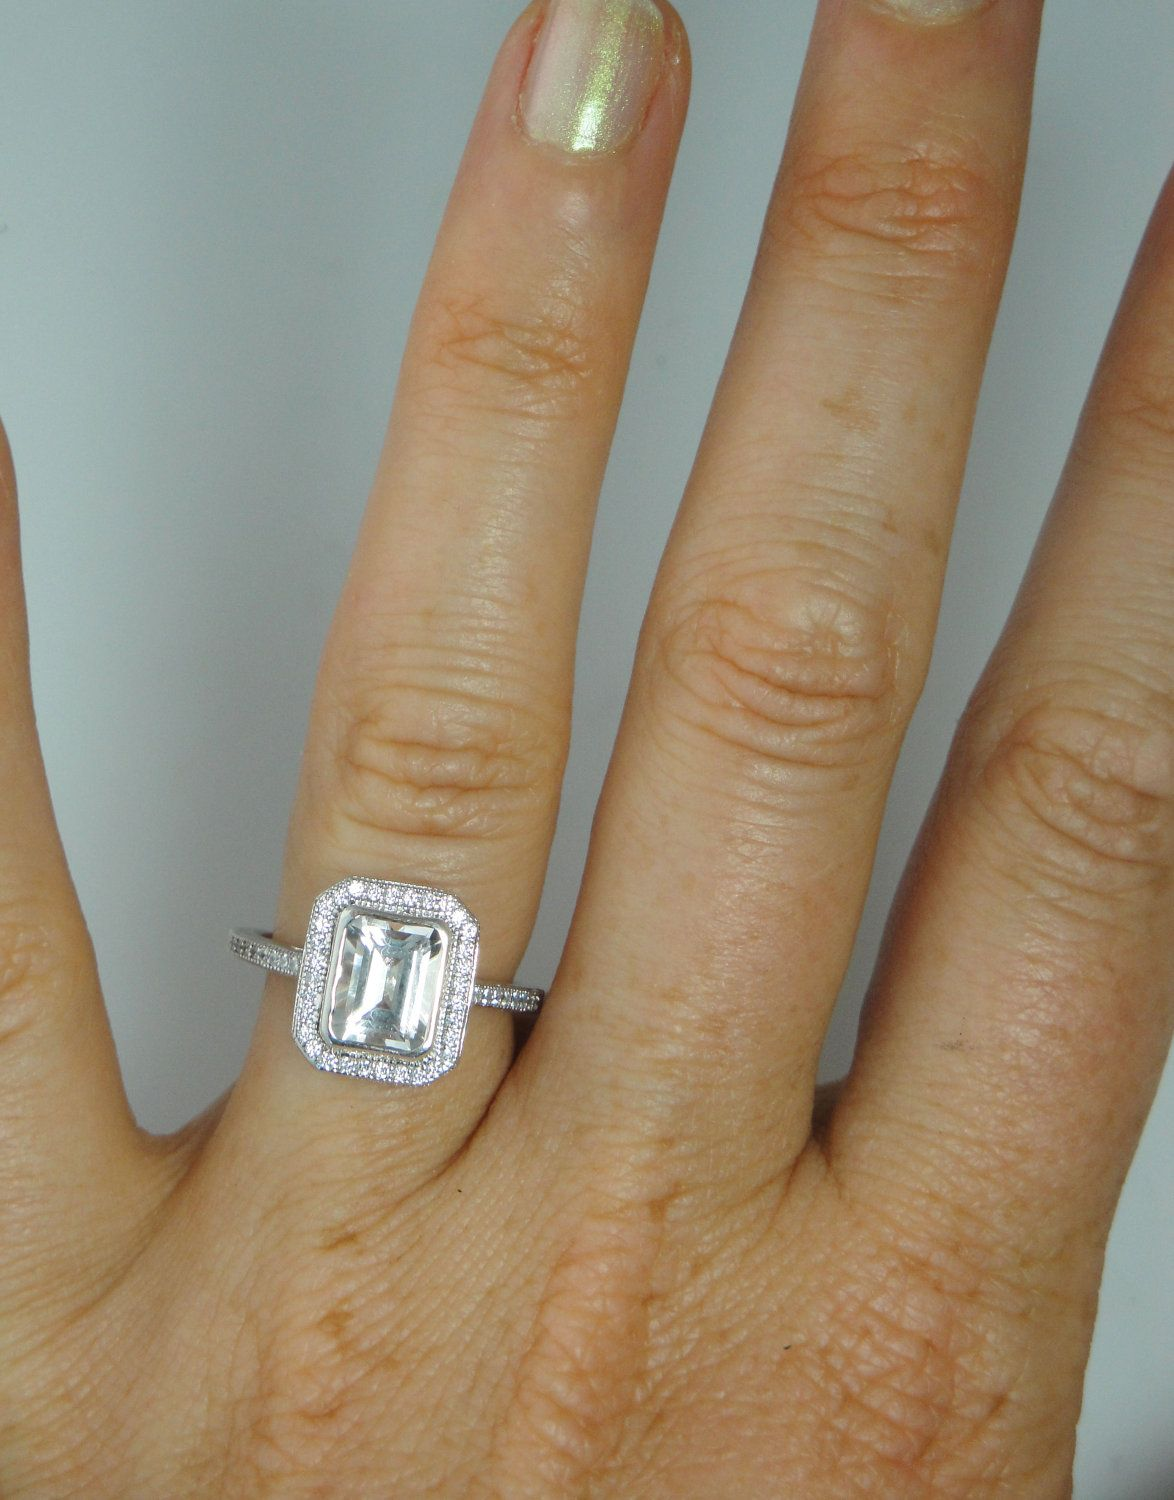 Reserved herkimer diamond ring emerald cut sterling silver bezel herkimer diamond ring emerald cut sterling silver bezel set 29500 via etsy junglespirit Images